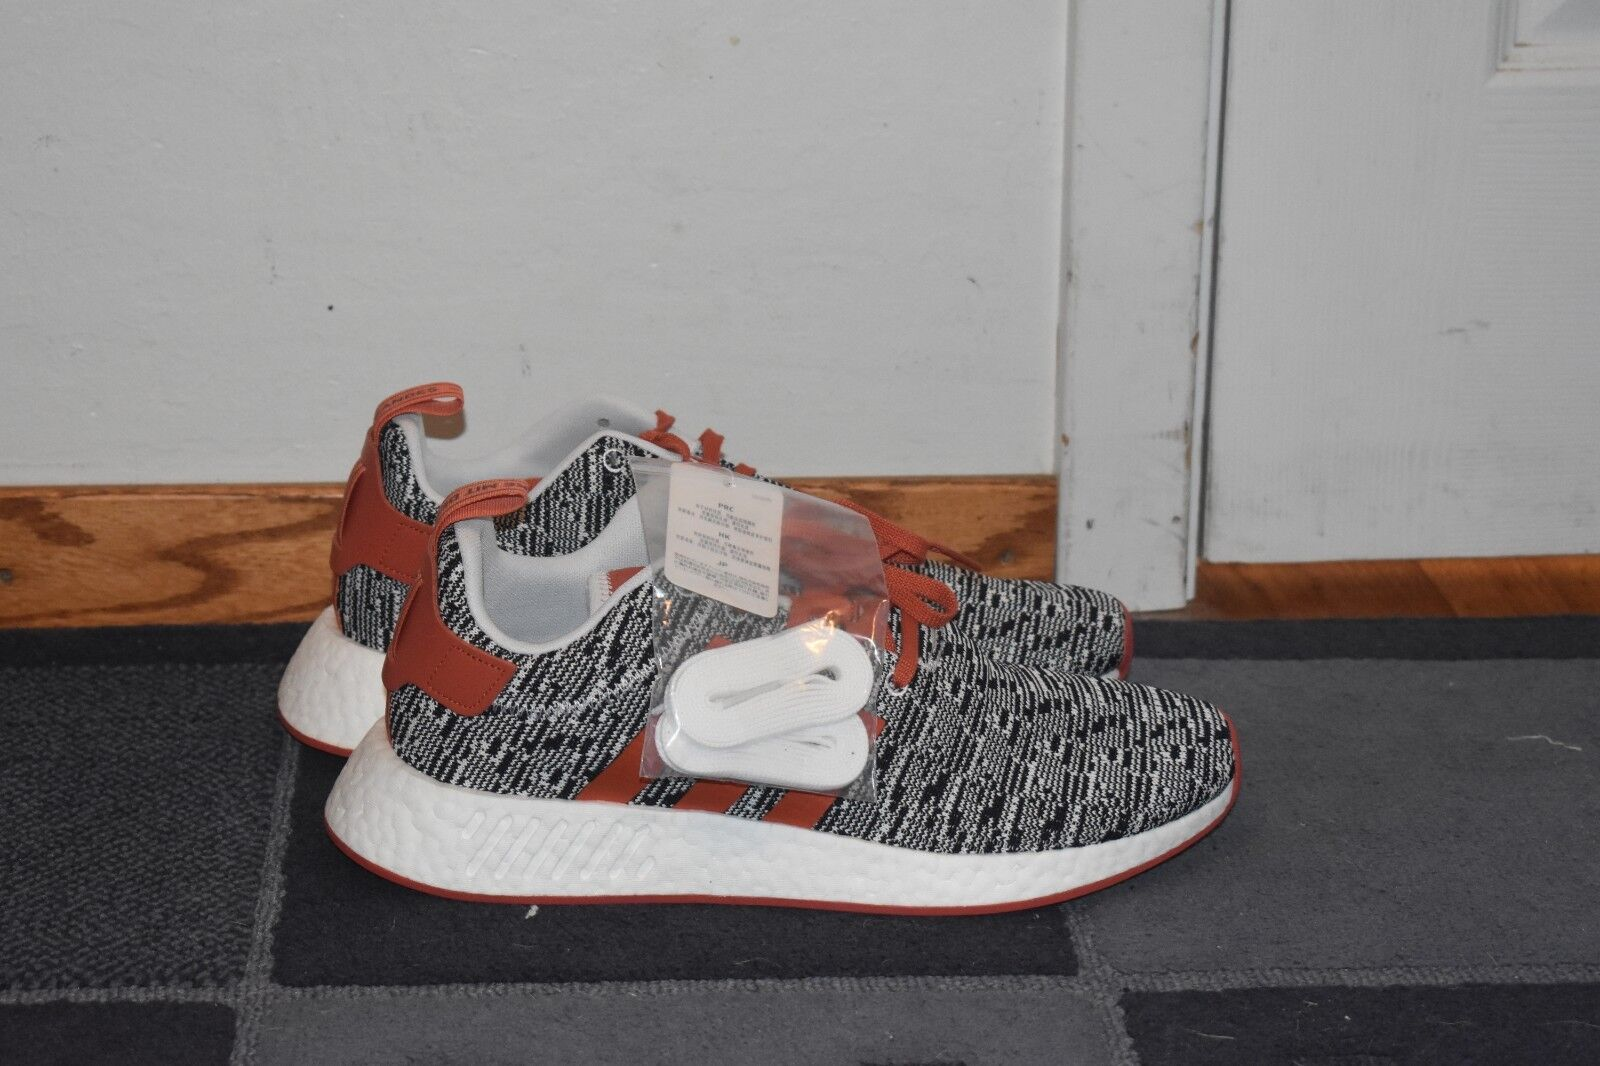 NEW Adidas NMD R2 JD Sports Sports Sports orange and Grey Men's Running shoes Size 11.5 BY2098 994dee